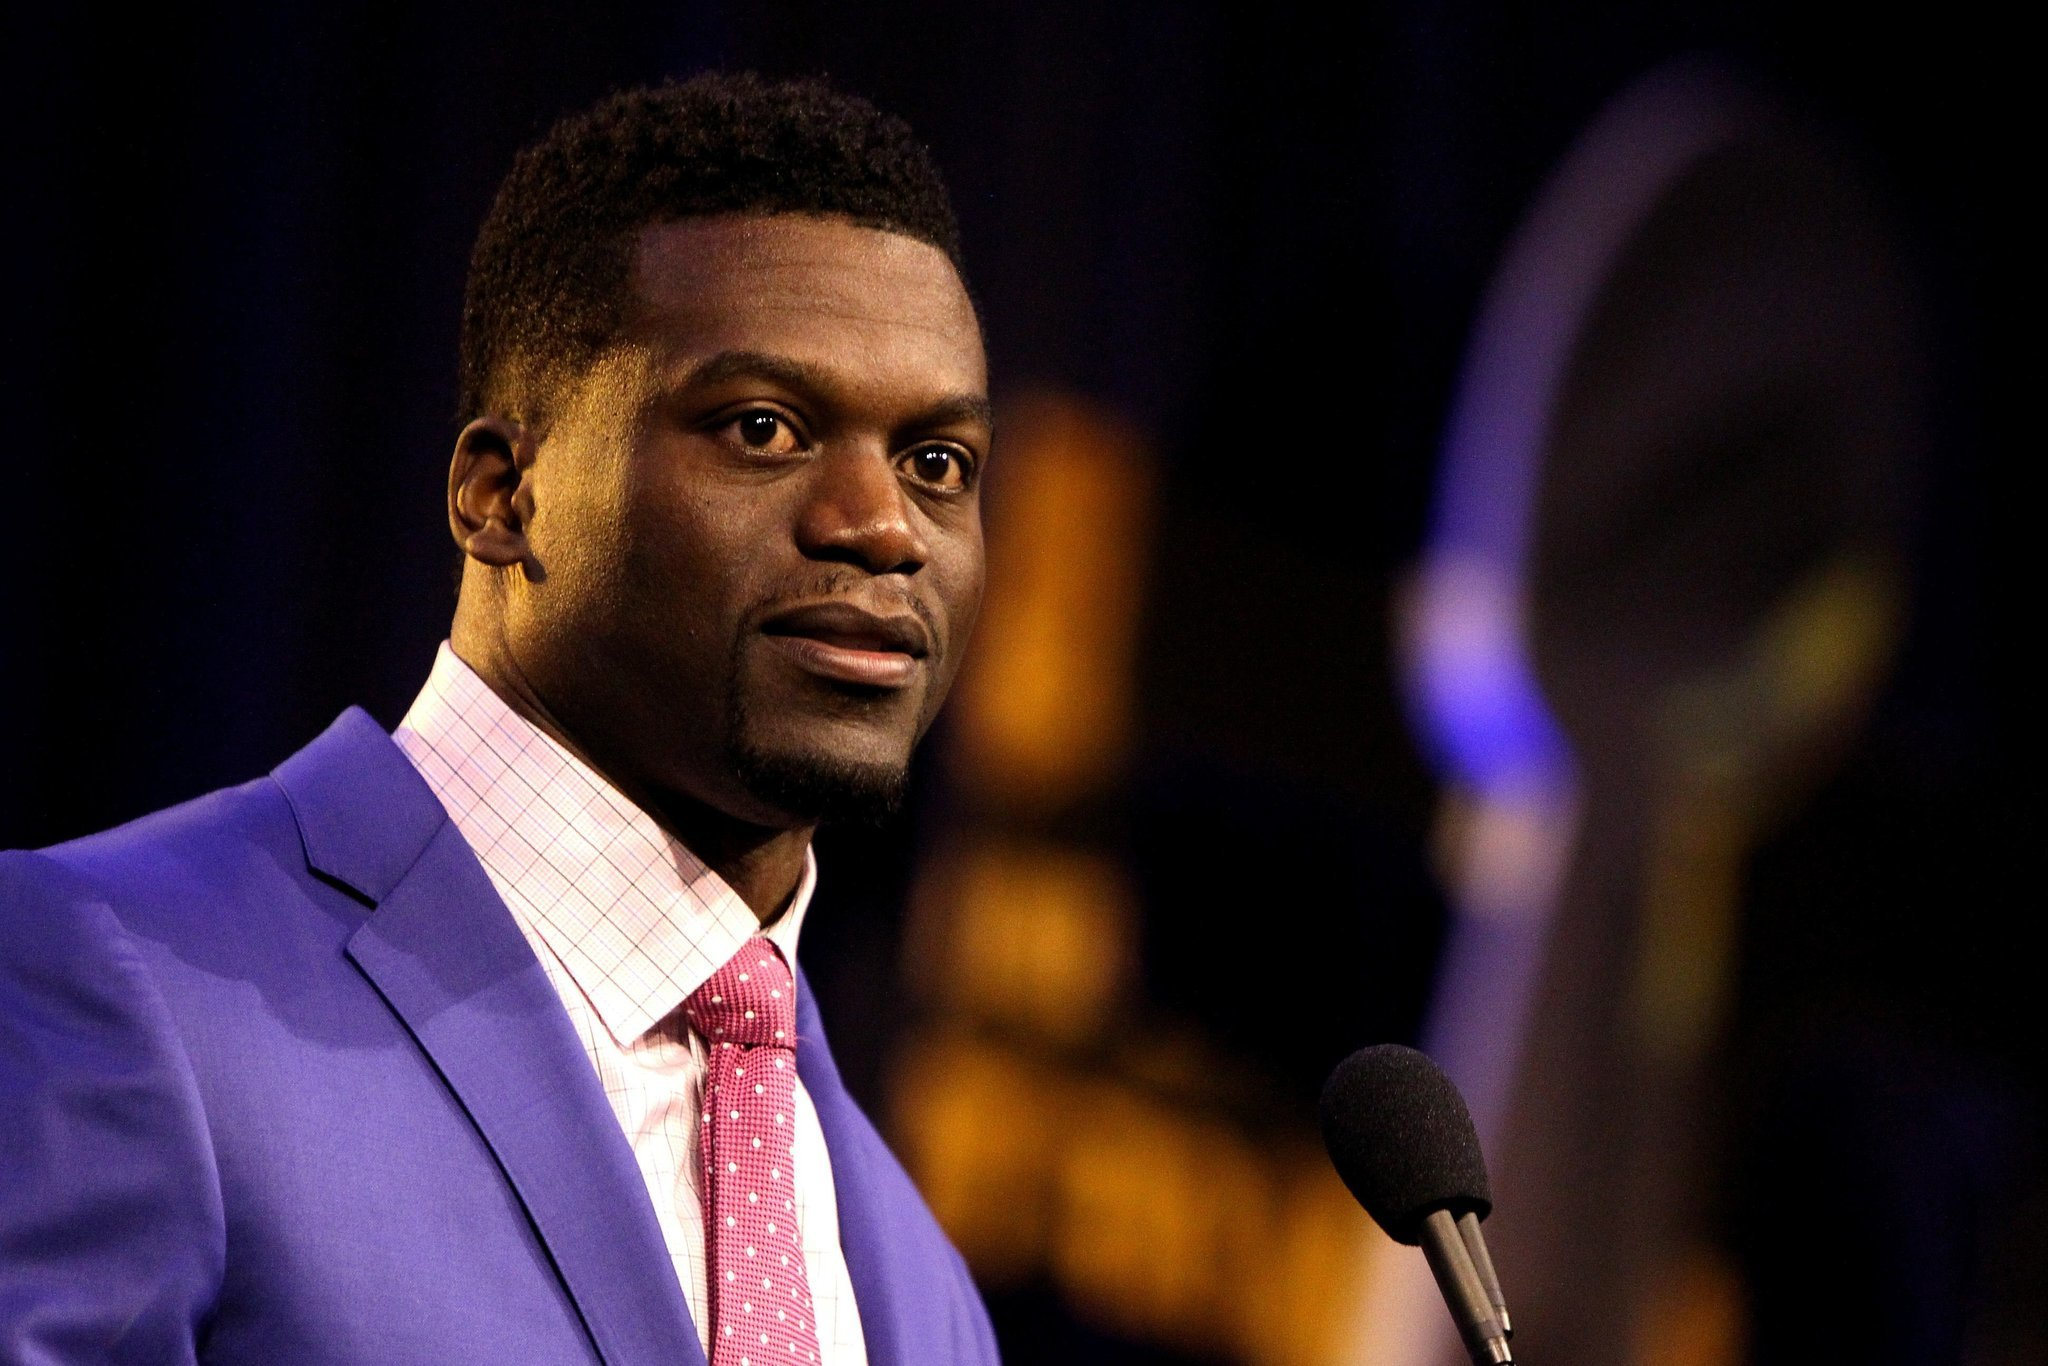 Bal-ravens-benjamin-watson-would-stand-for-anthem-but-protests-are-distinctly-american-20160908